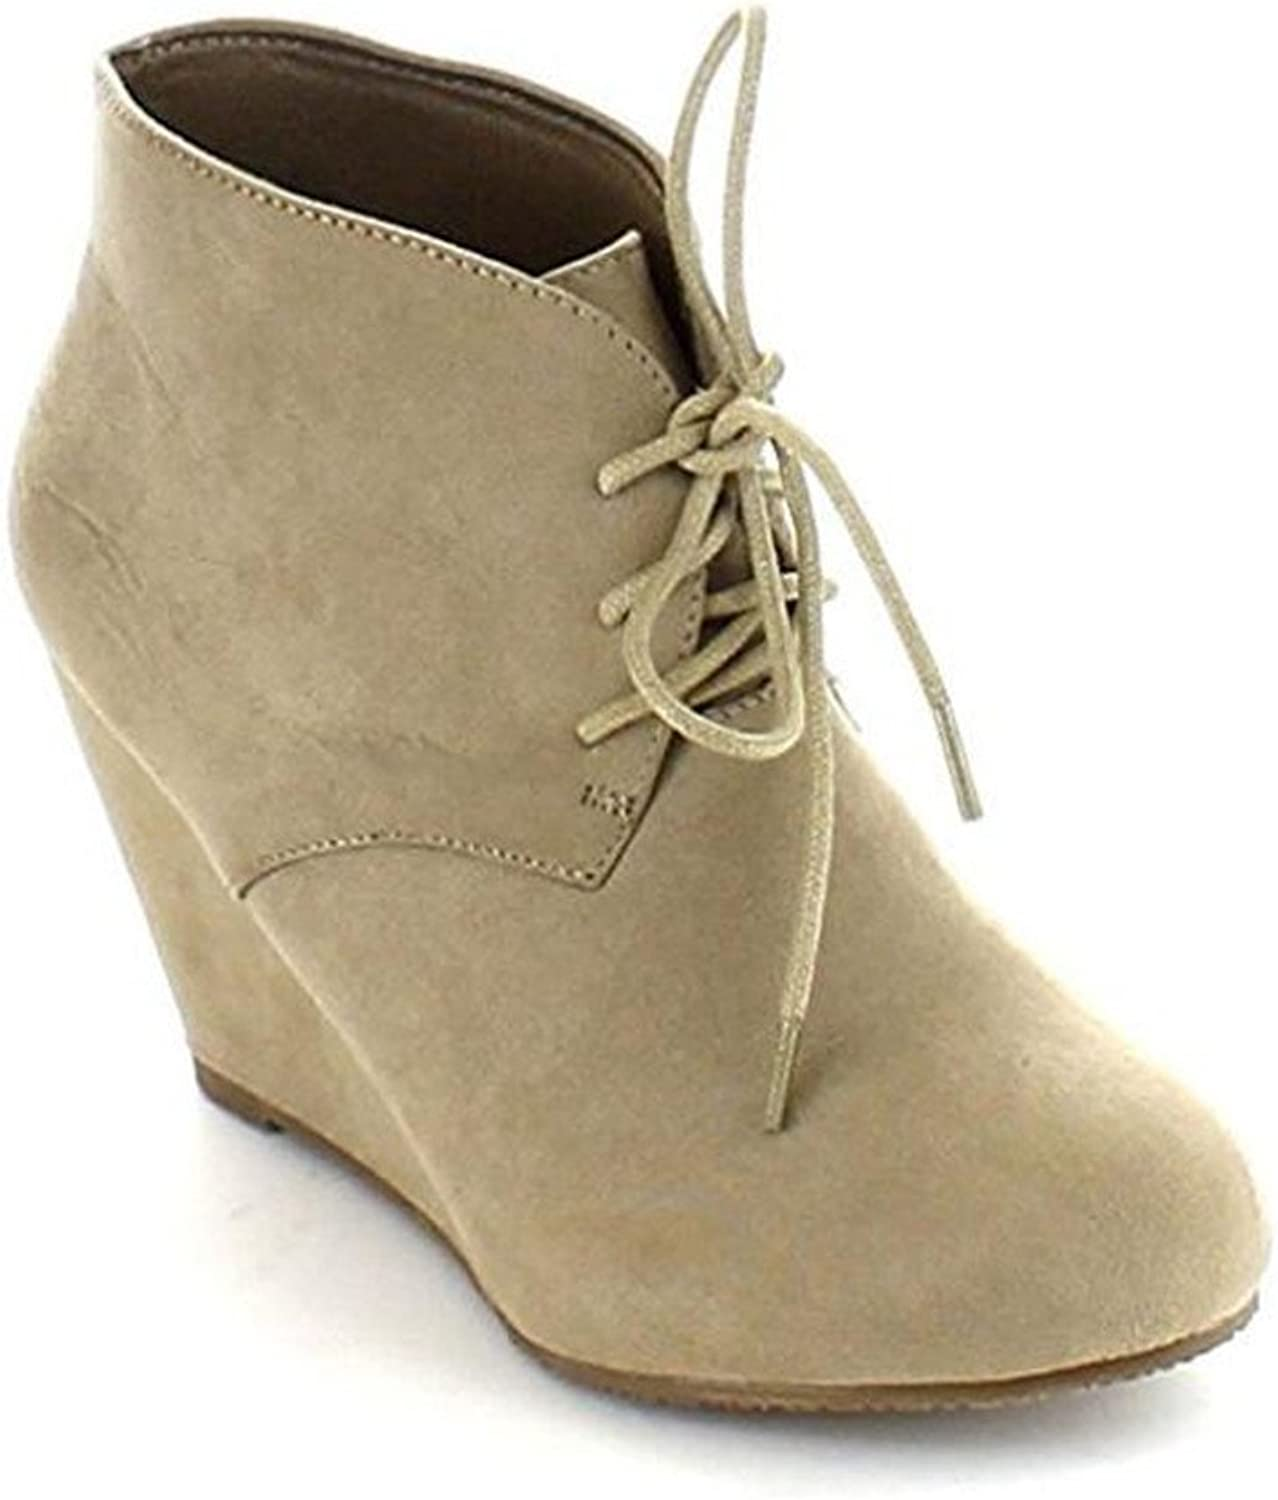 ShoBeautiful Womens Lace up Wedges Bootie Fashion Casual Outdoor Adorable Almond Toe Ankle Boots